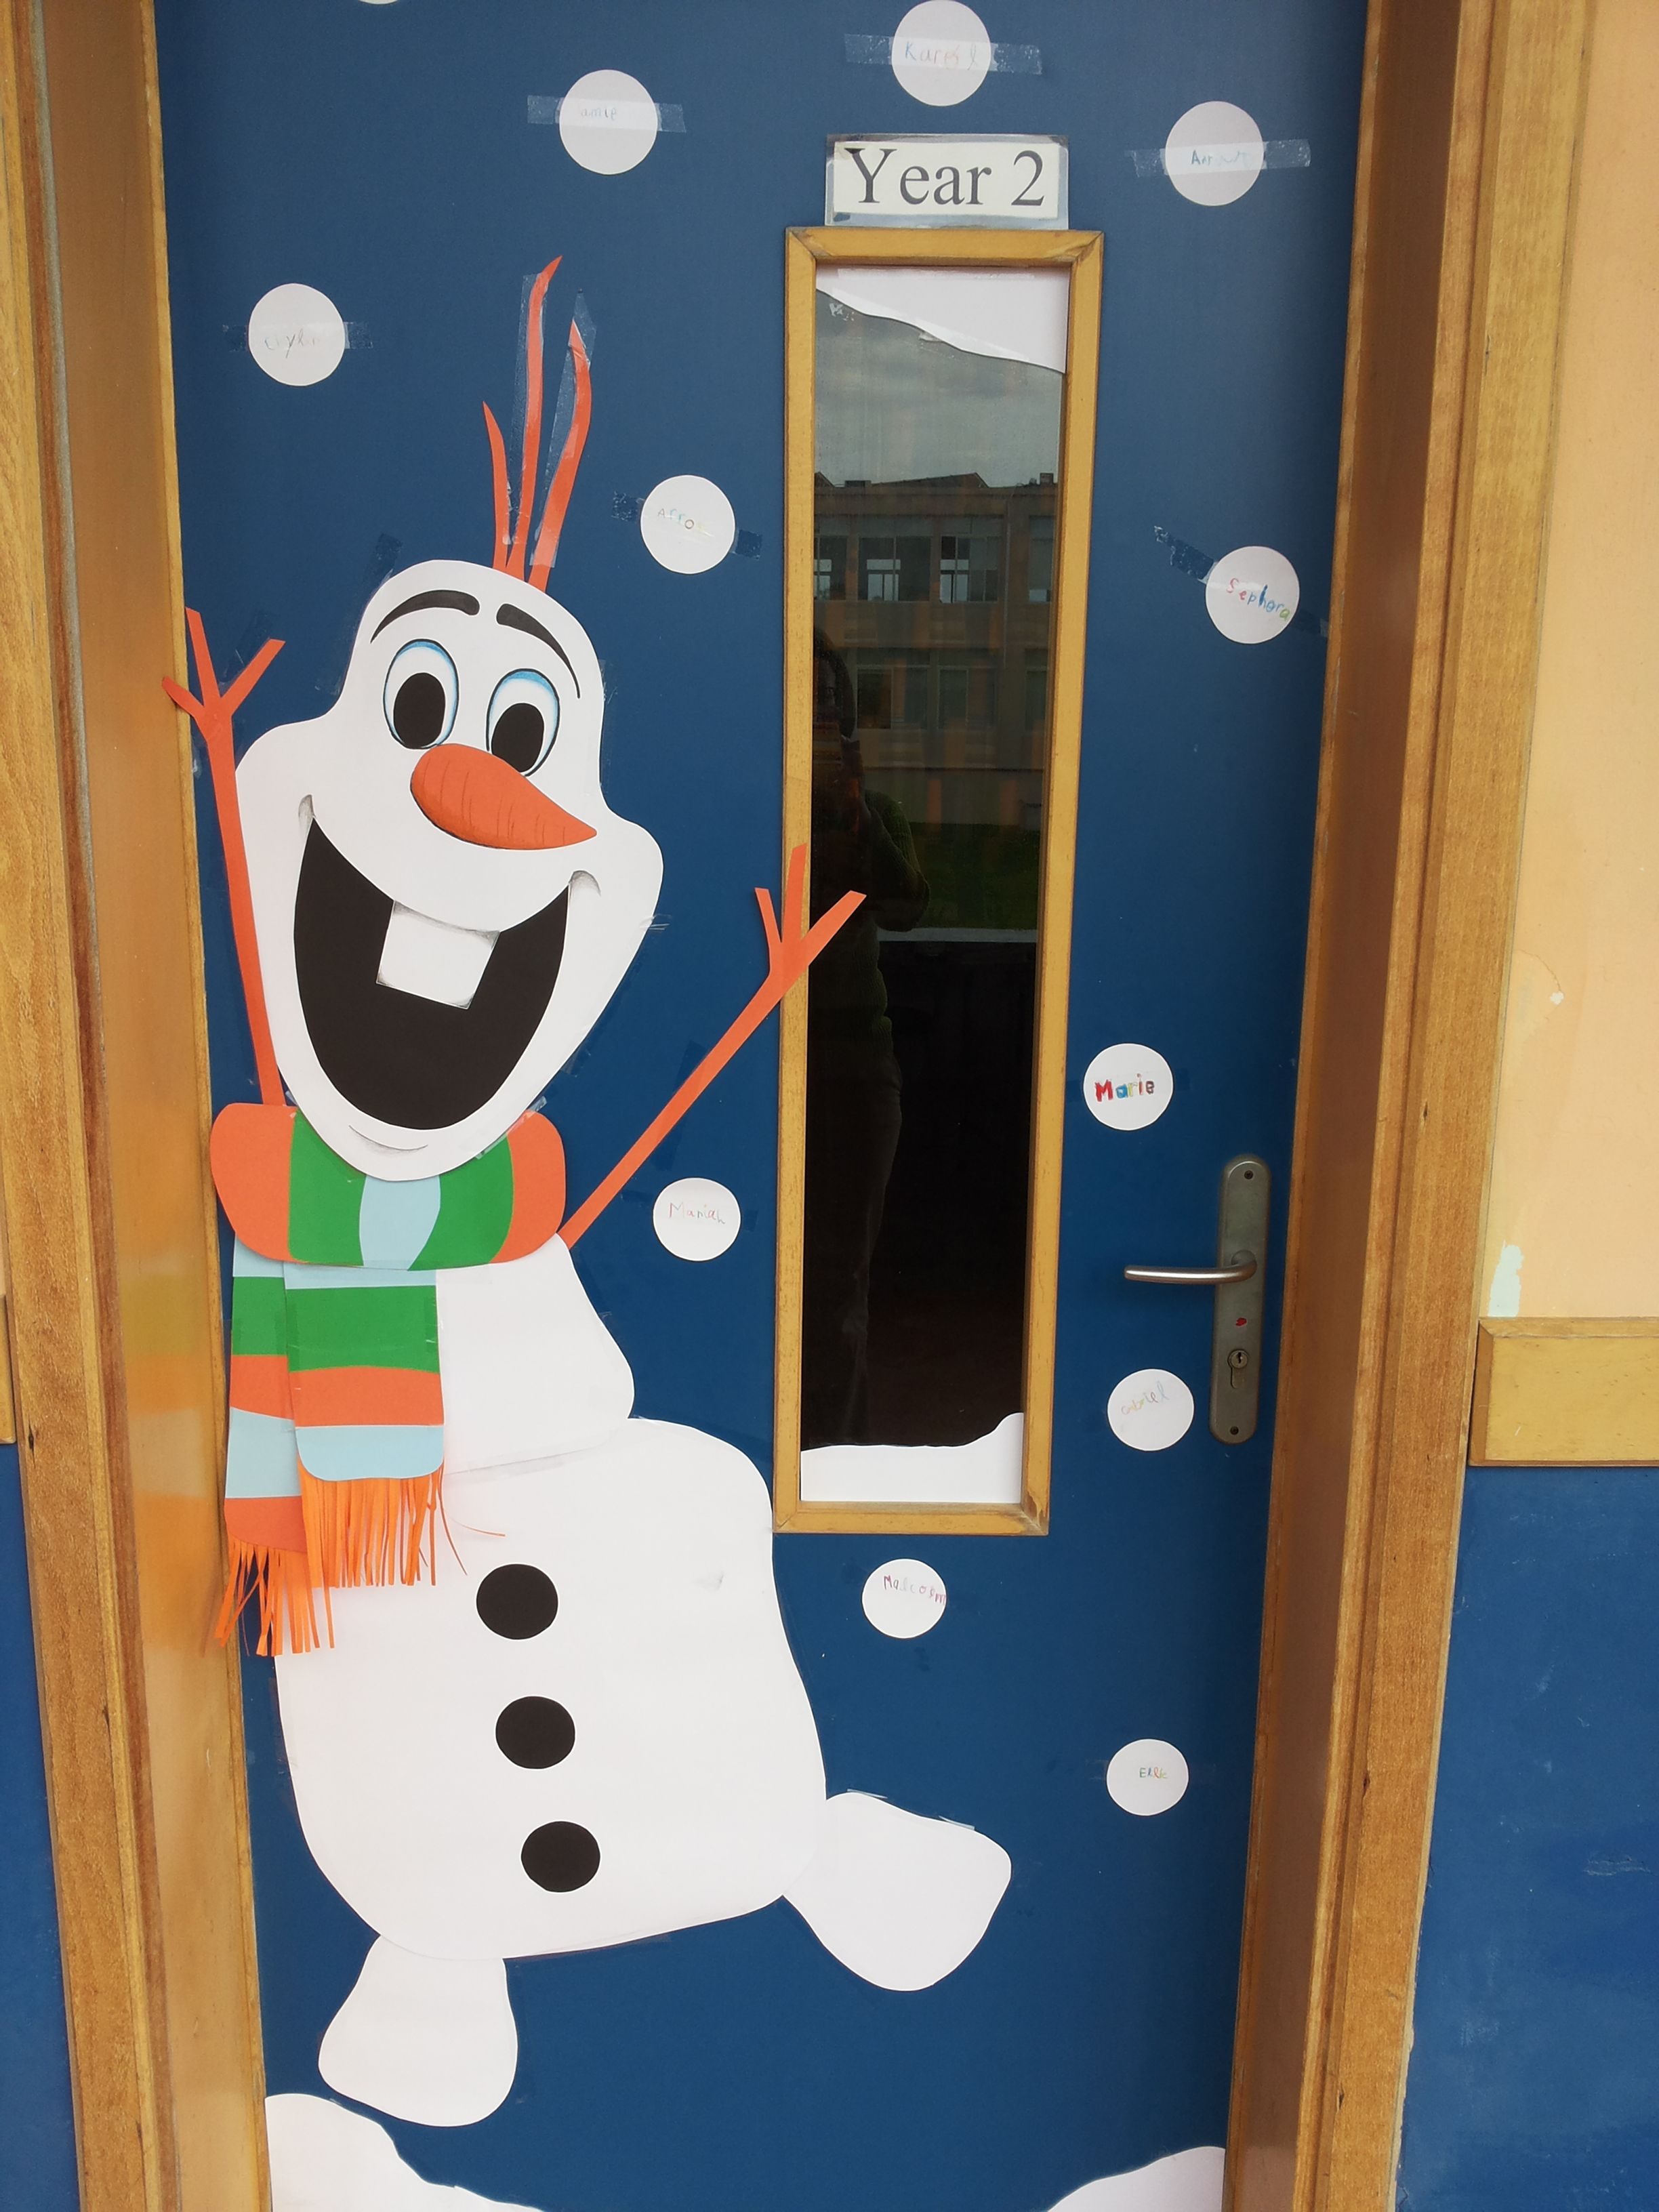 Christmas classroom door decoration ideas - 40 Classroom Christmas Decorations Ideas For 2016